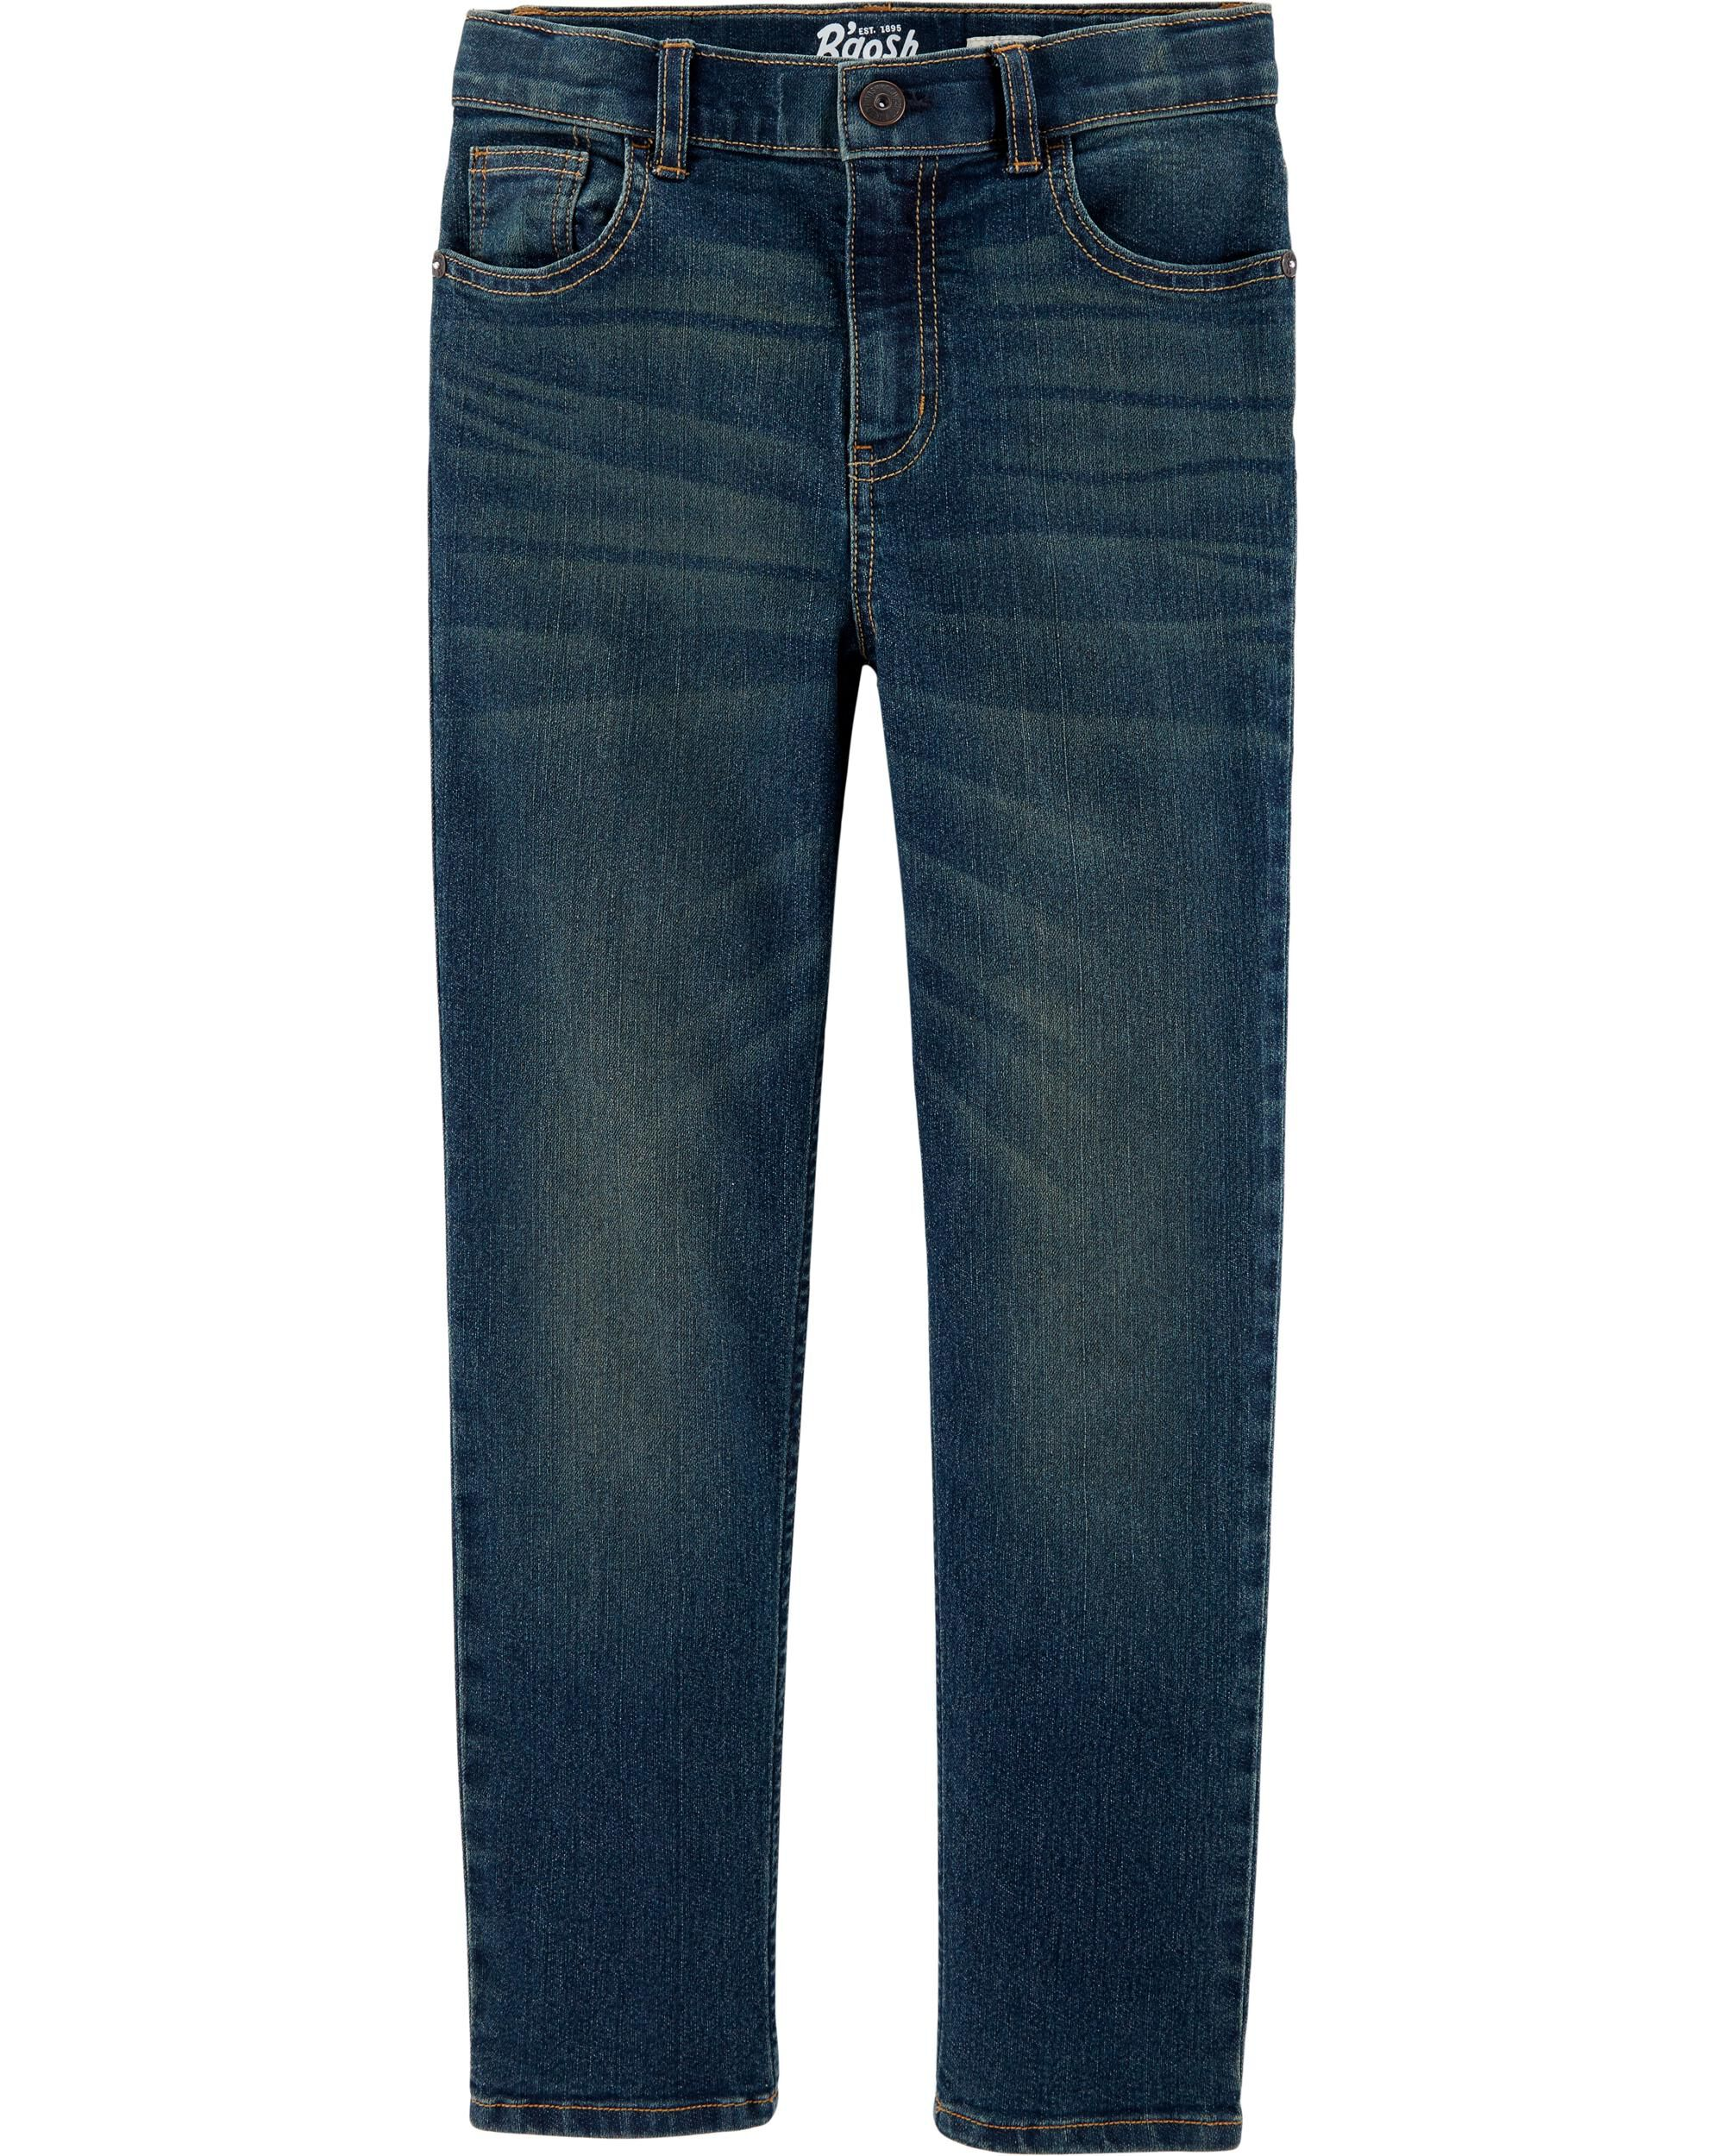 *DOORBUSTER*Straight Jeans - Authentic Tinted Wash